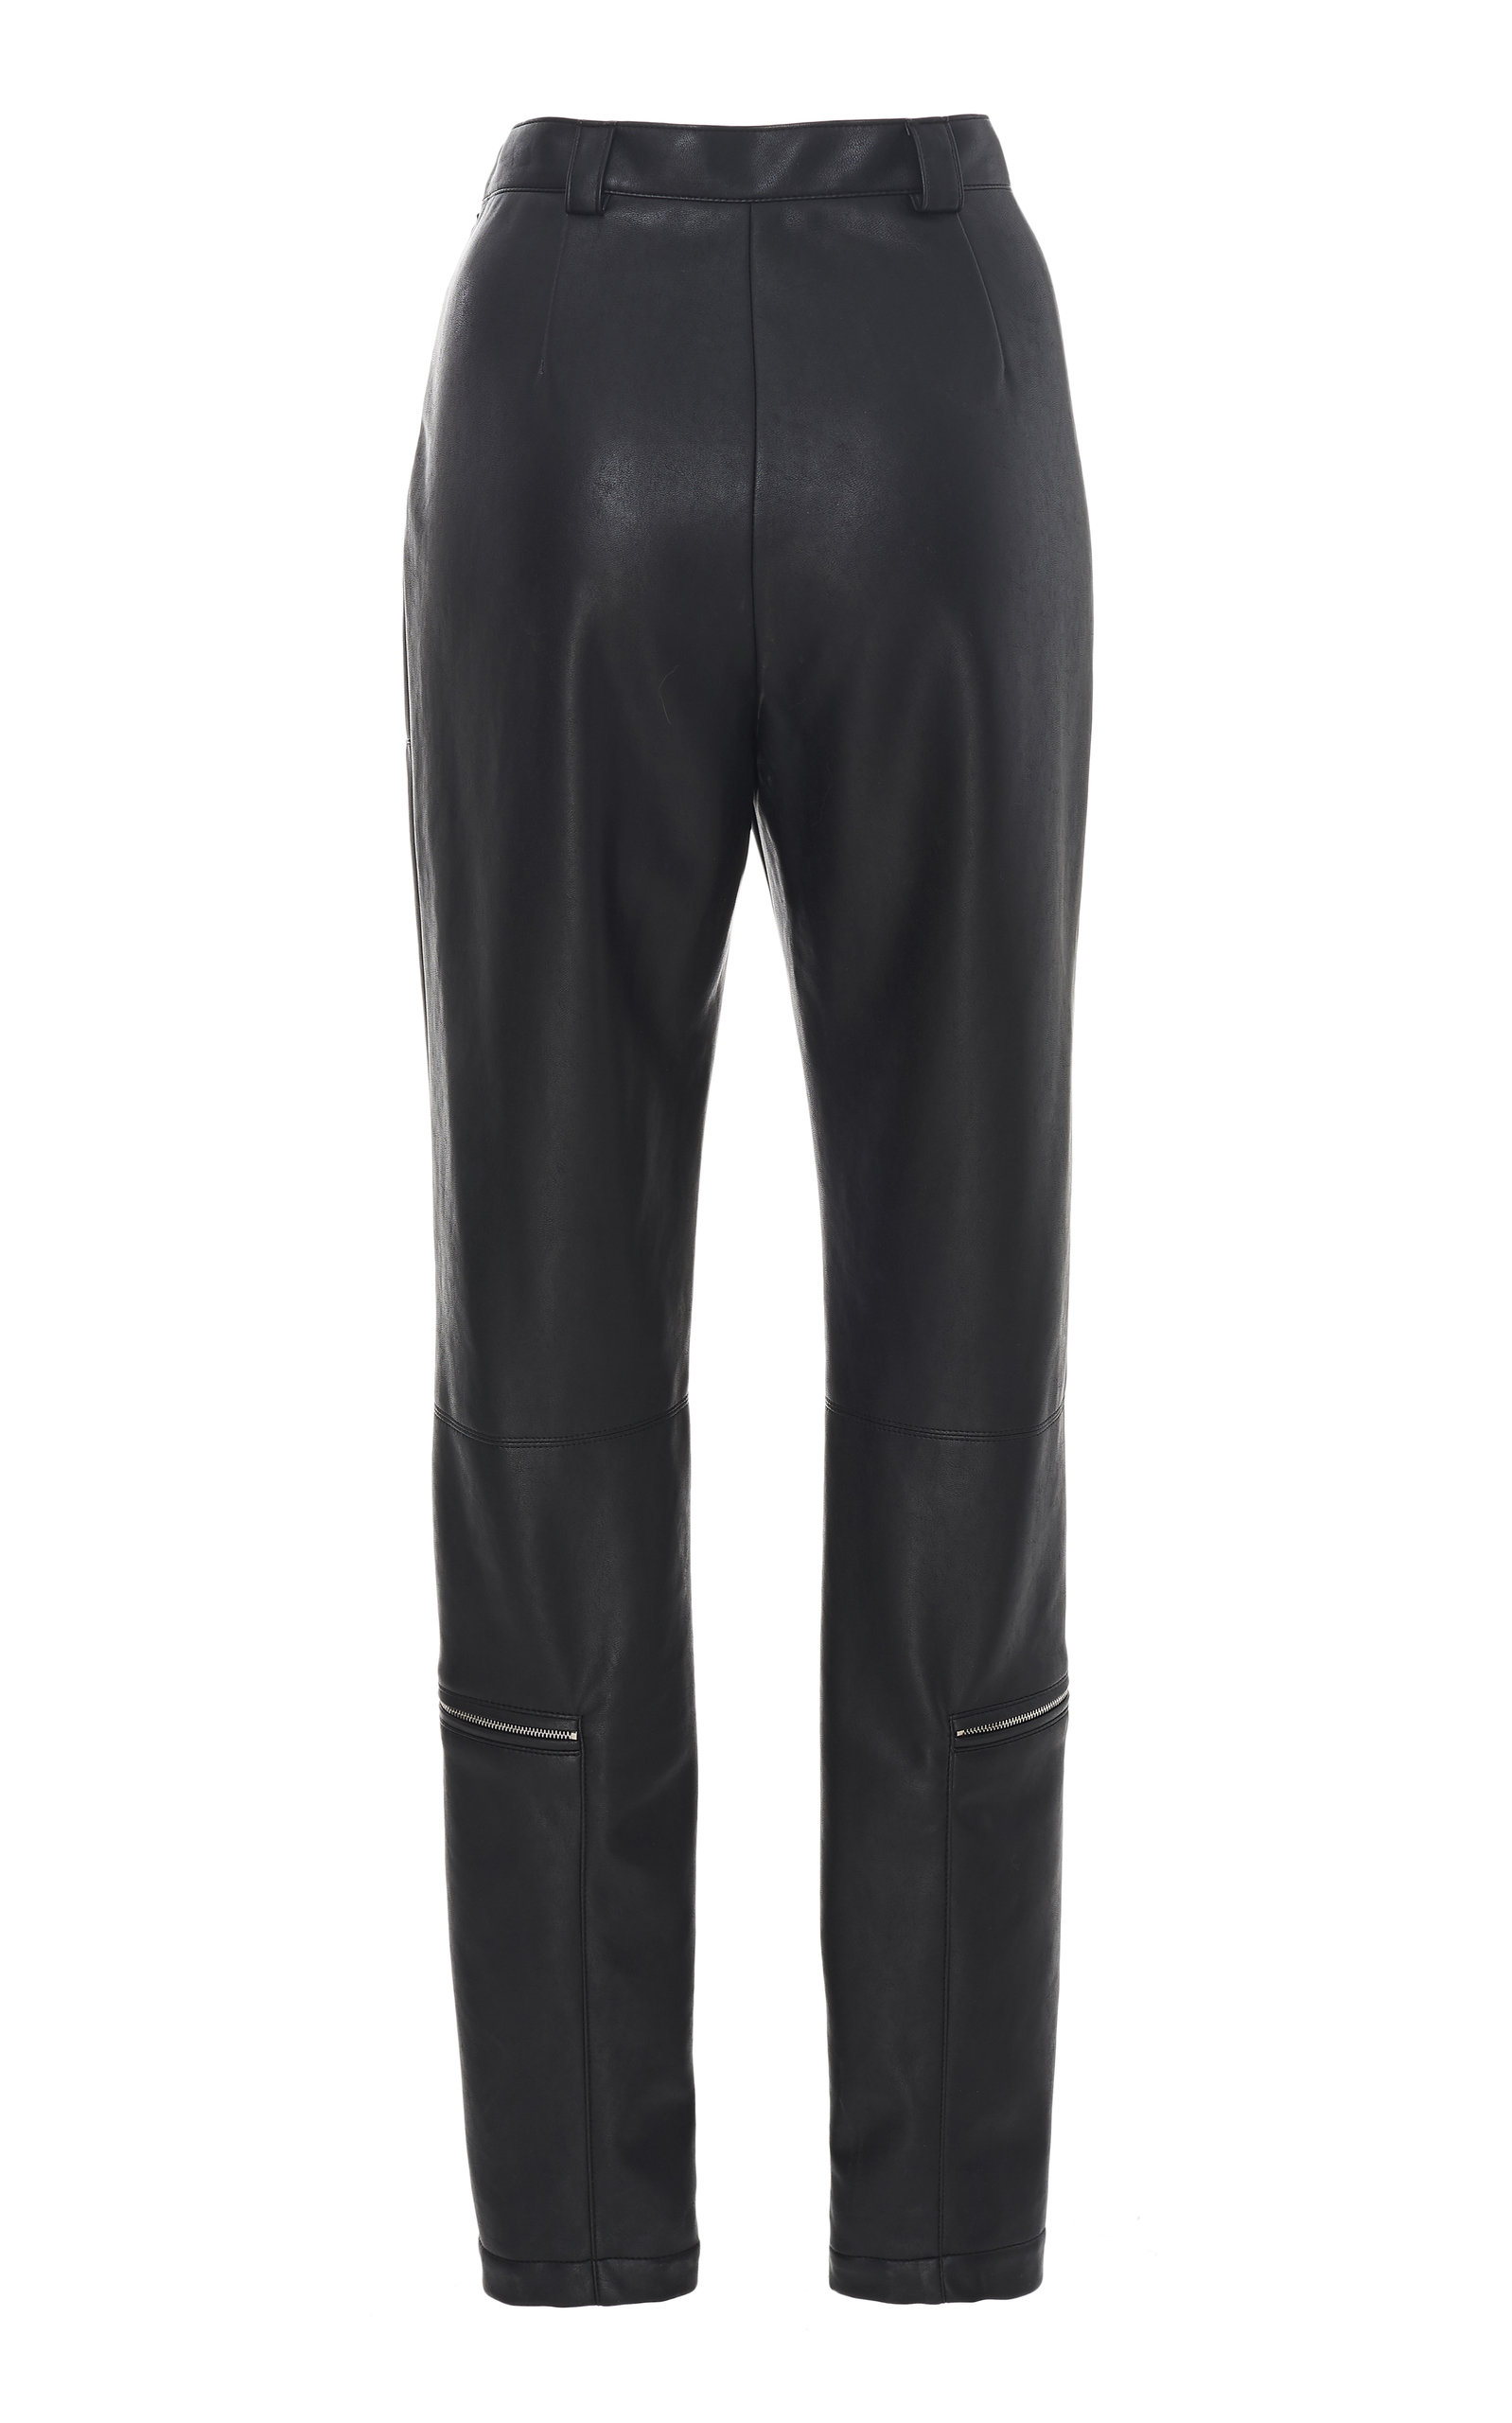 5b2121a3755 Sally LaPointeZip-Detailed Faux Leather Skinny Pants. CLOSE. Loading.  Loading